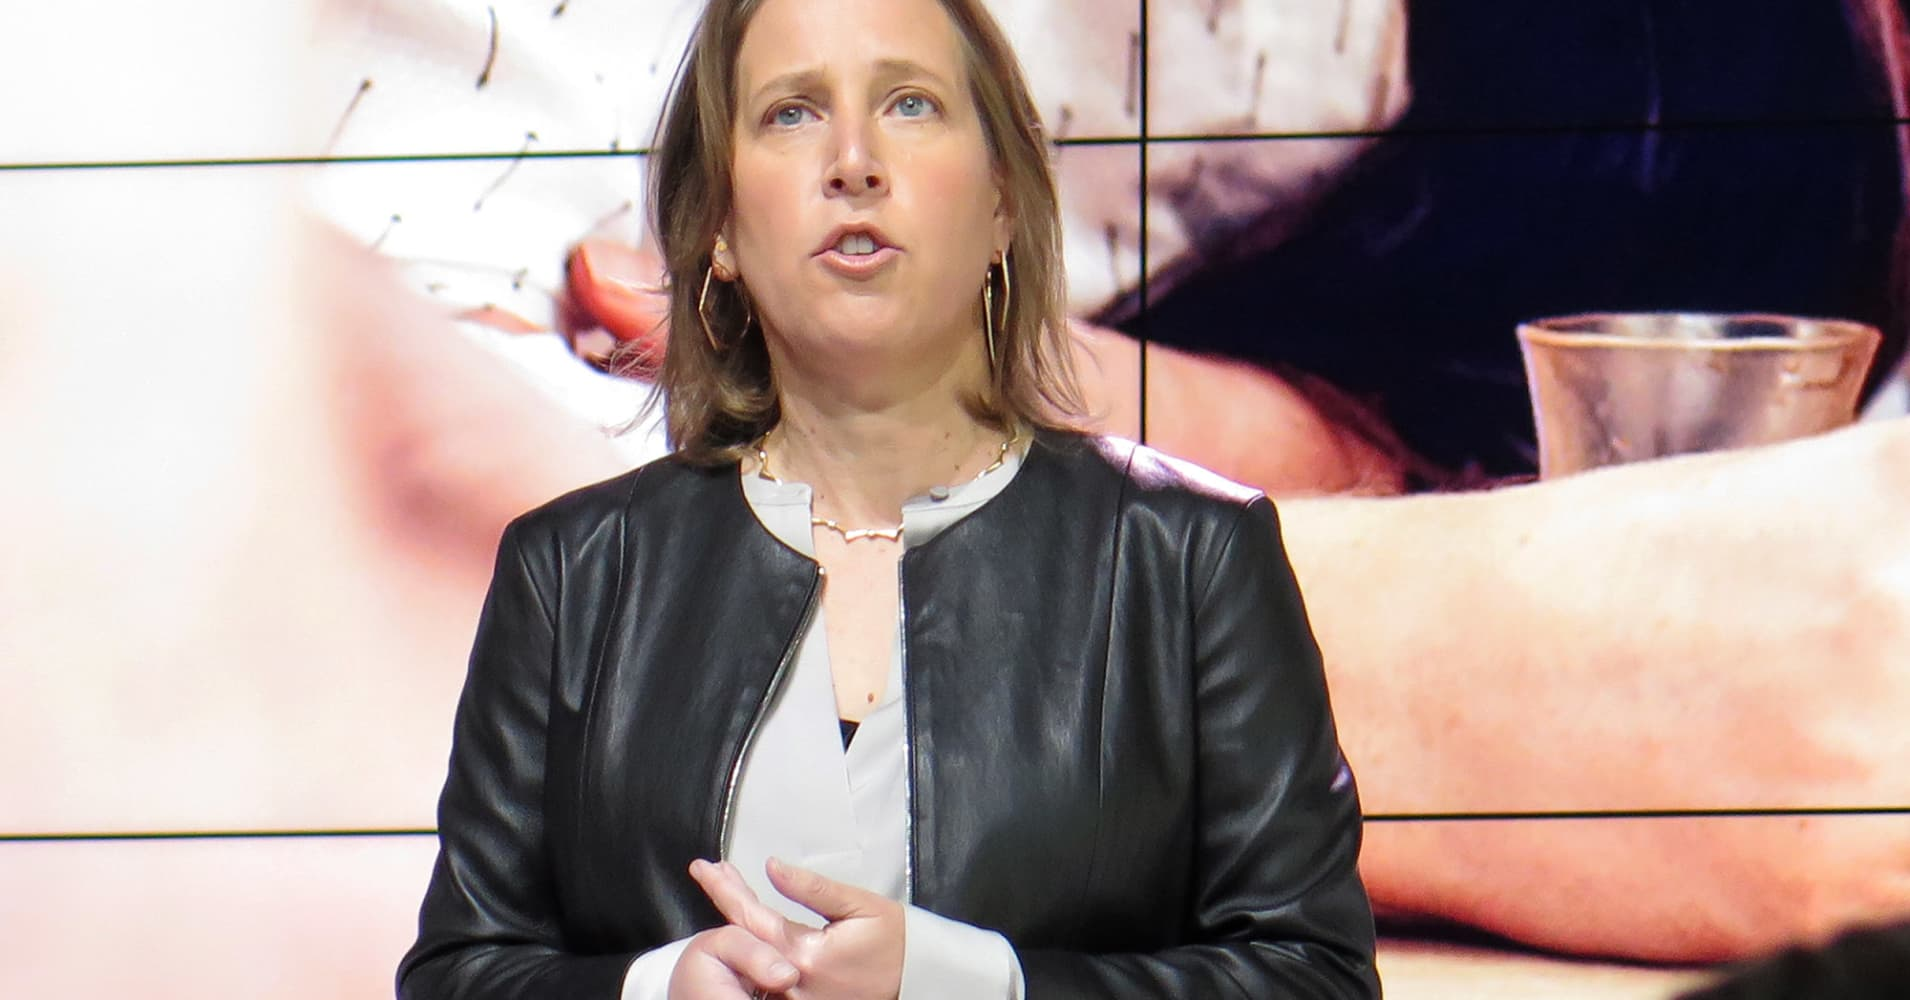 YouTube CEO Susan Wojcicki speaks at Lesbians Who Tech conference